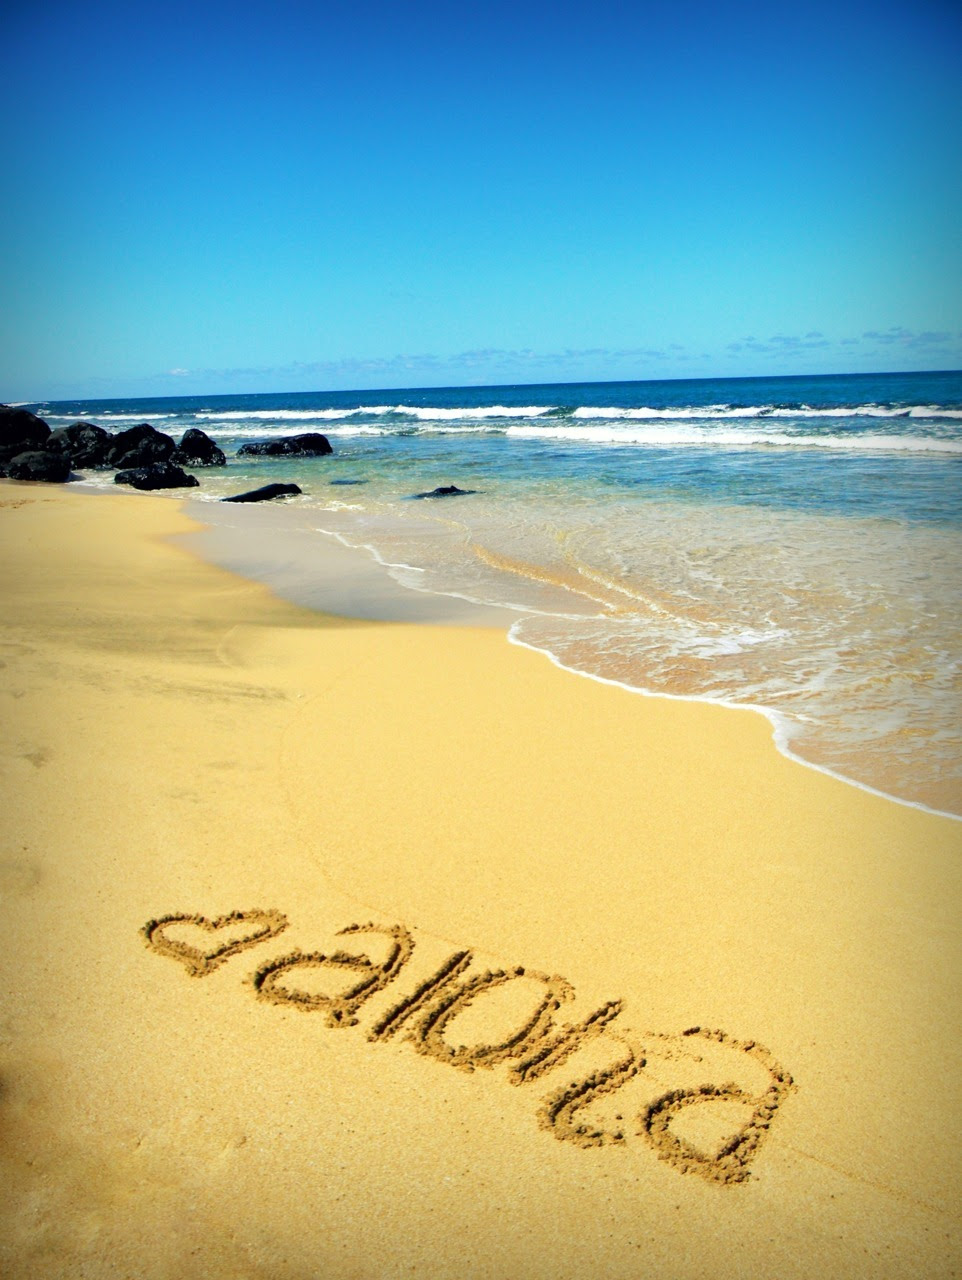 Hawaii Vacation Quotes. QuotesGram